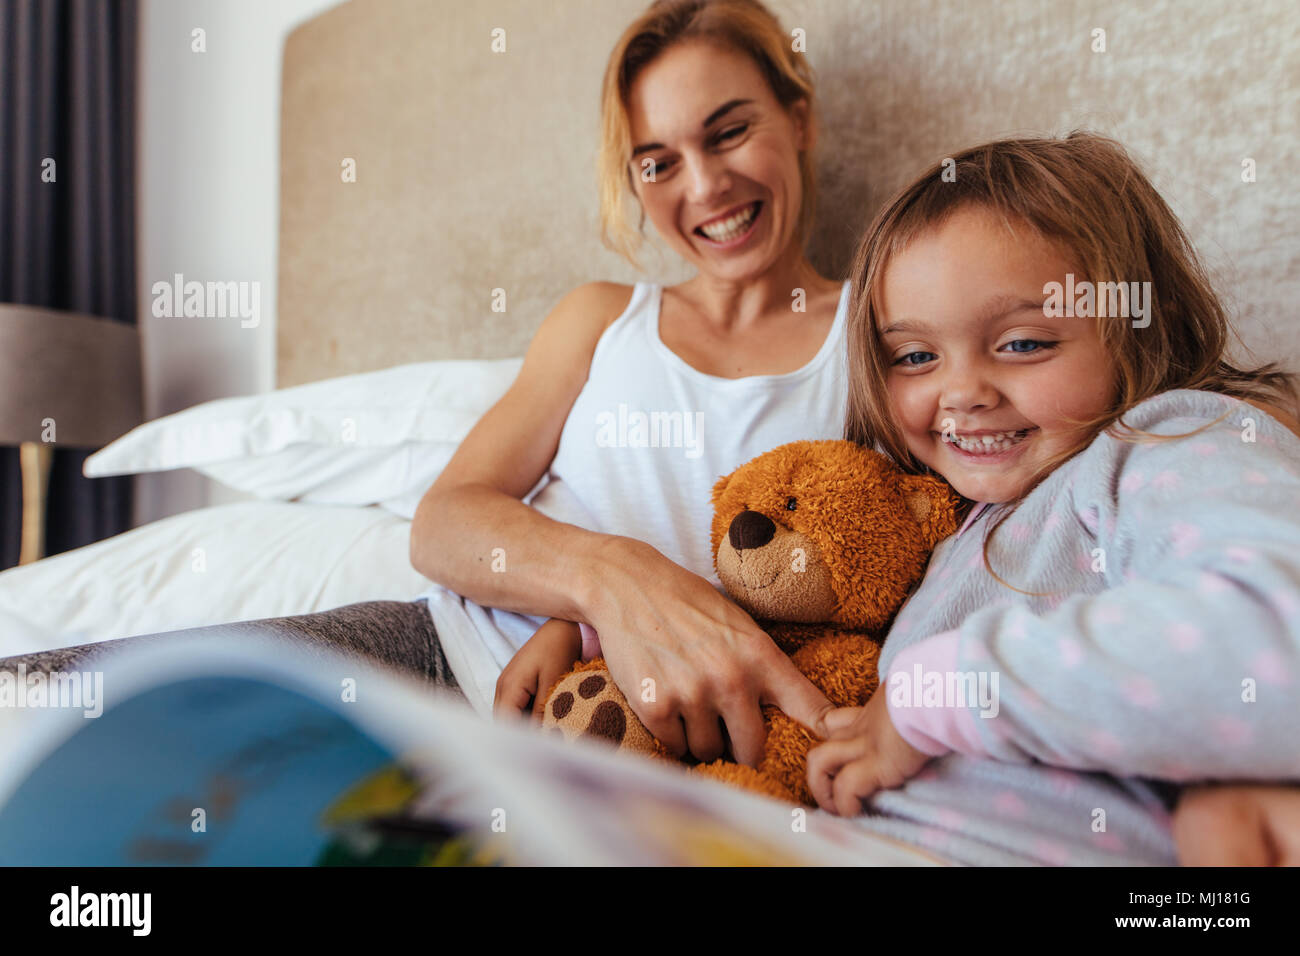 Happy mother and daughter looking at a book and smiling on bed. Pretty young woman reading a book to her daughter on bed. - Stock Image